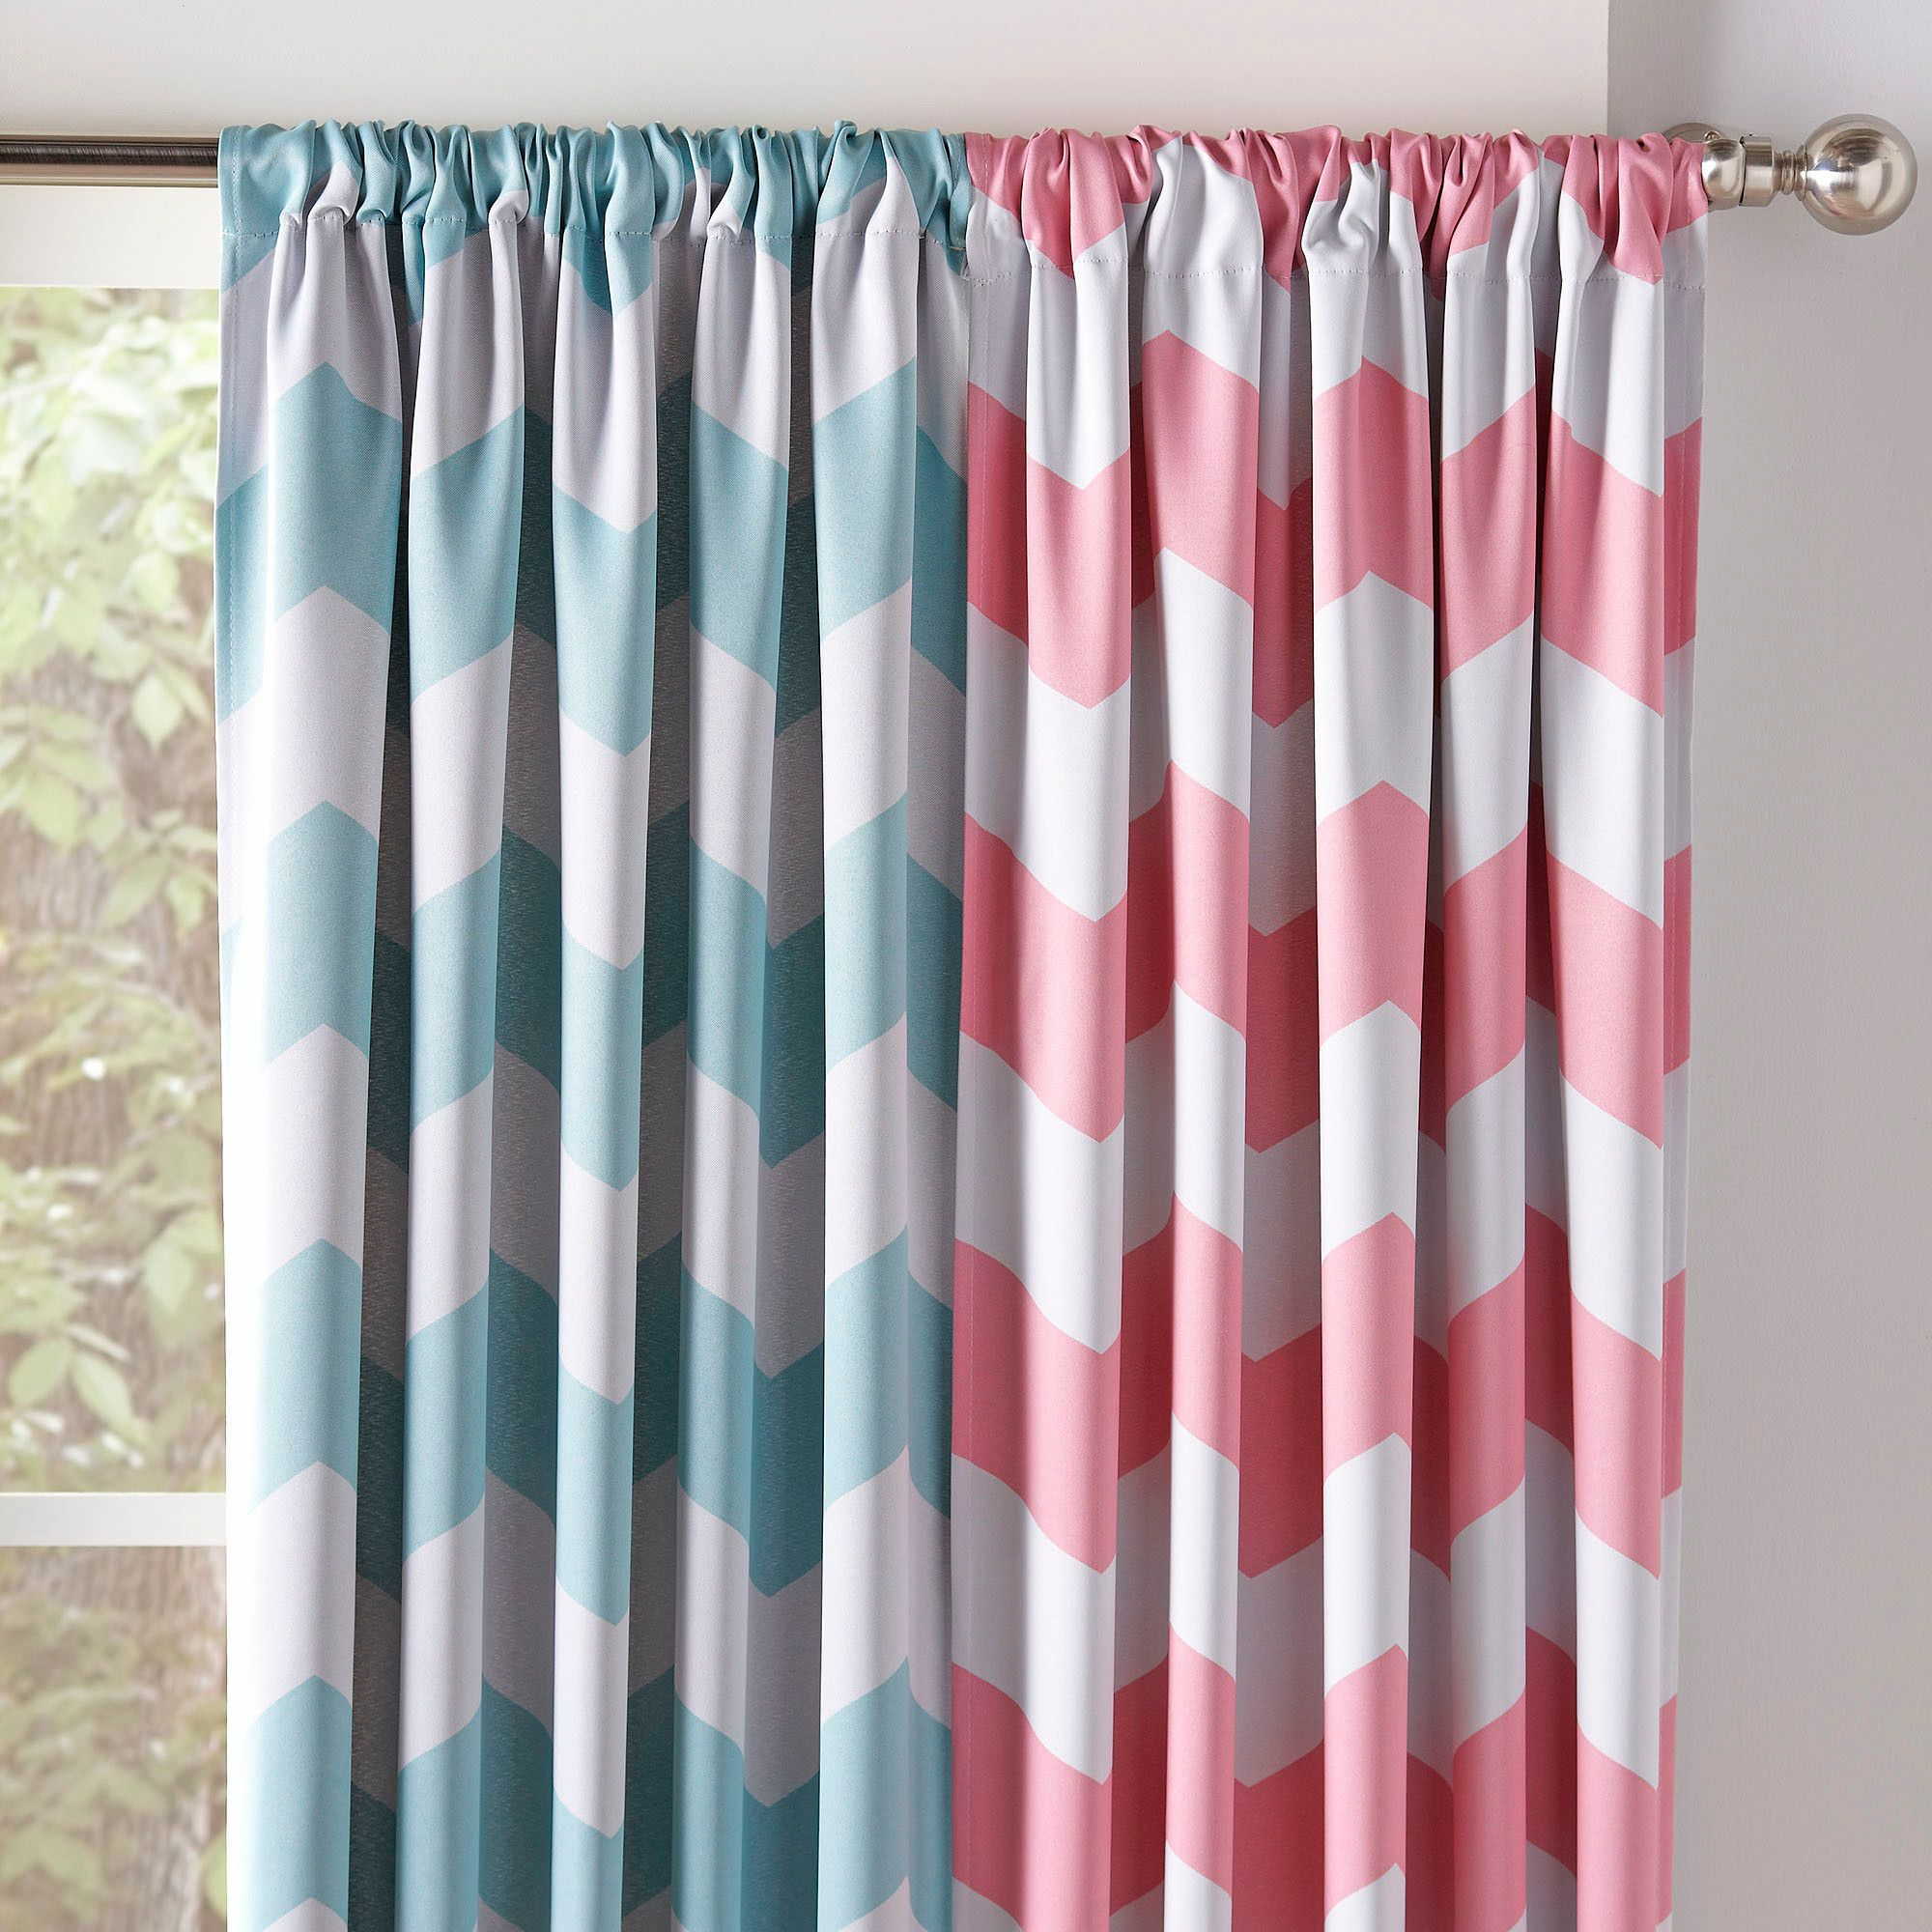 out freaked pin fabrics fancy small new fun n i kitchen drapes love my curtains